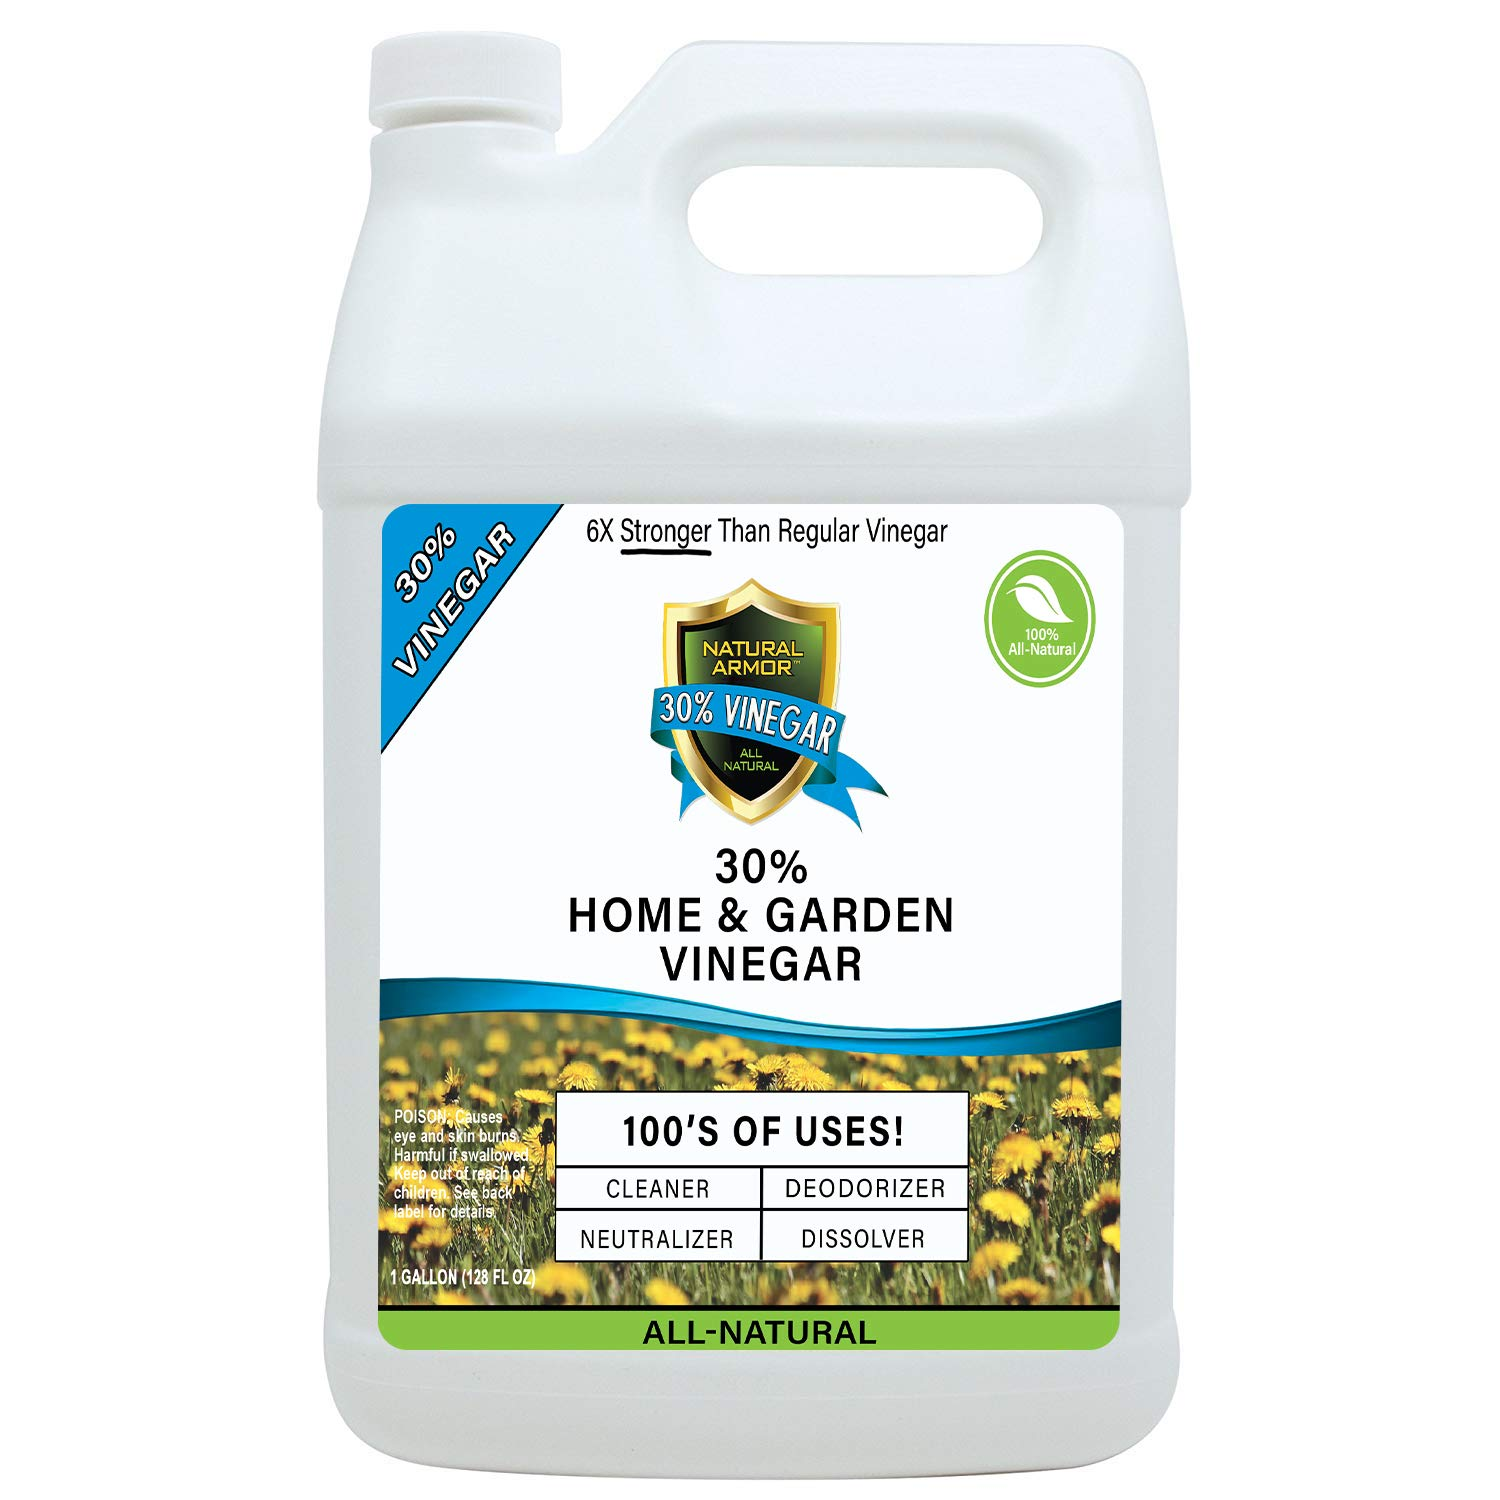 30% Vinegar PURE NATURAL & SAFE INDUSTRIAL STRENGTH CONCENTRATE for Home & Garden & Literally Hundreds Of Other Uses 6X Stronger Than Regular Vinegar (128 OZ GALLON Refill)